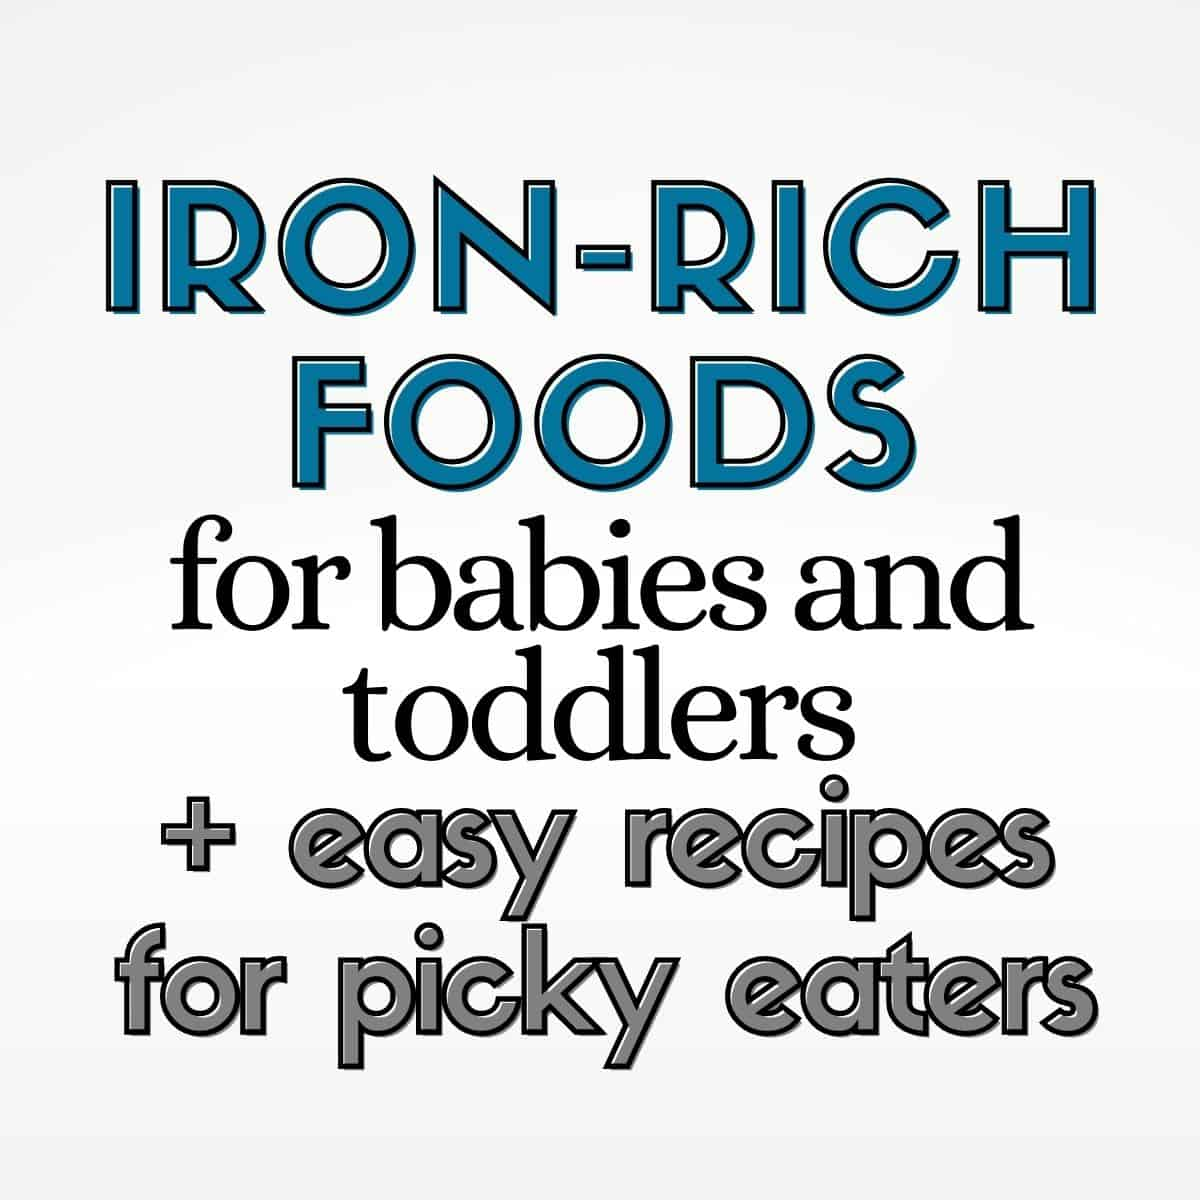 Graphic: iron-rich foods for babies and toddlers